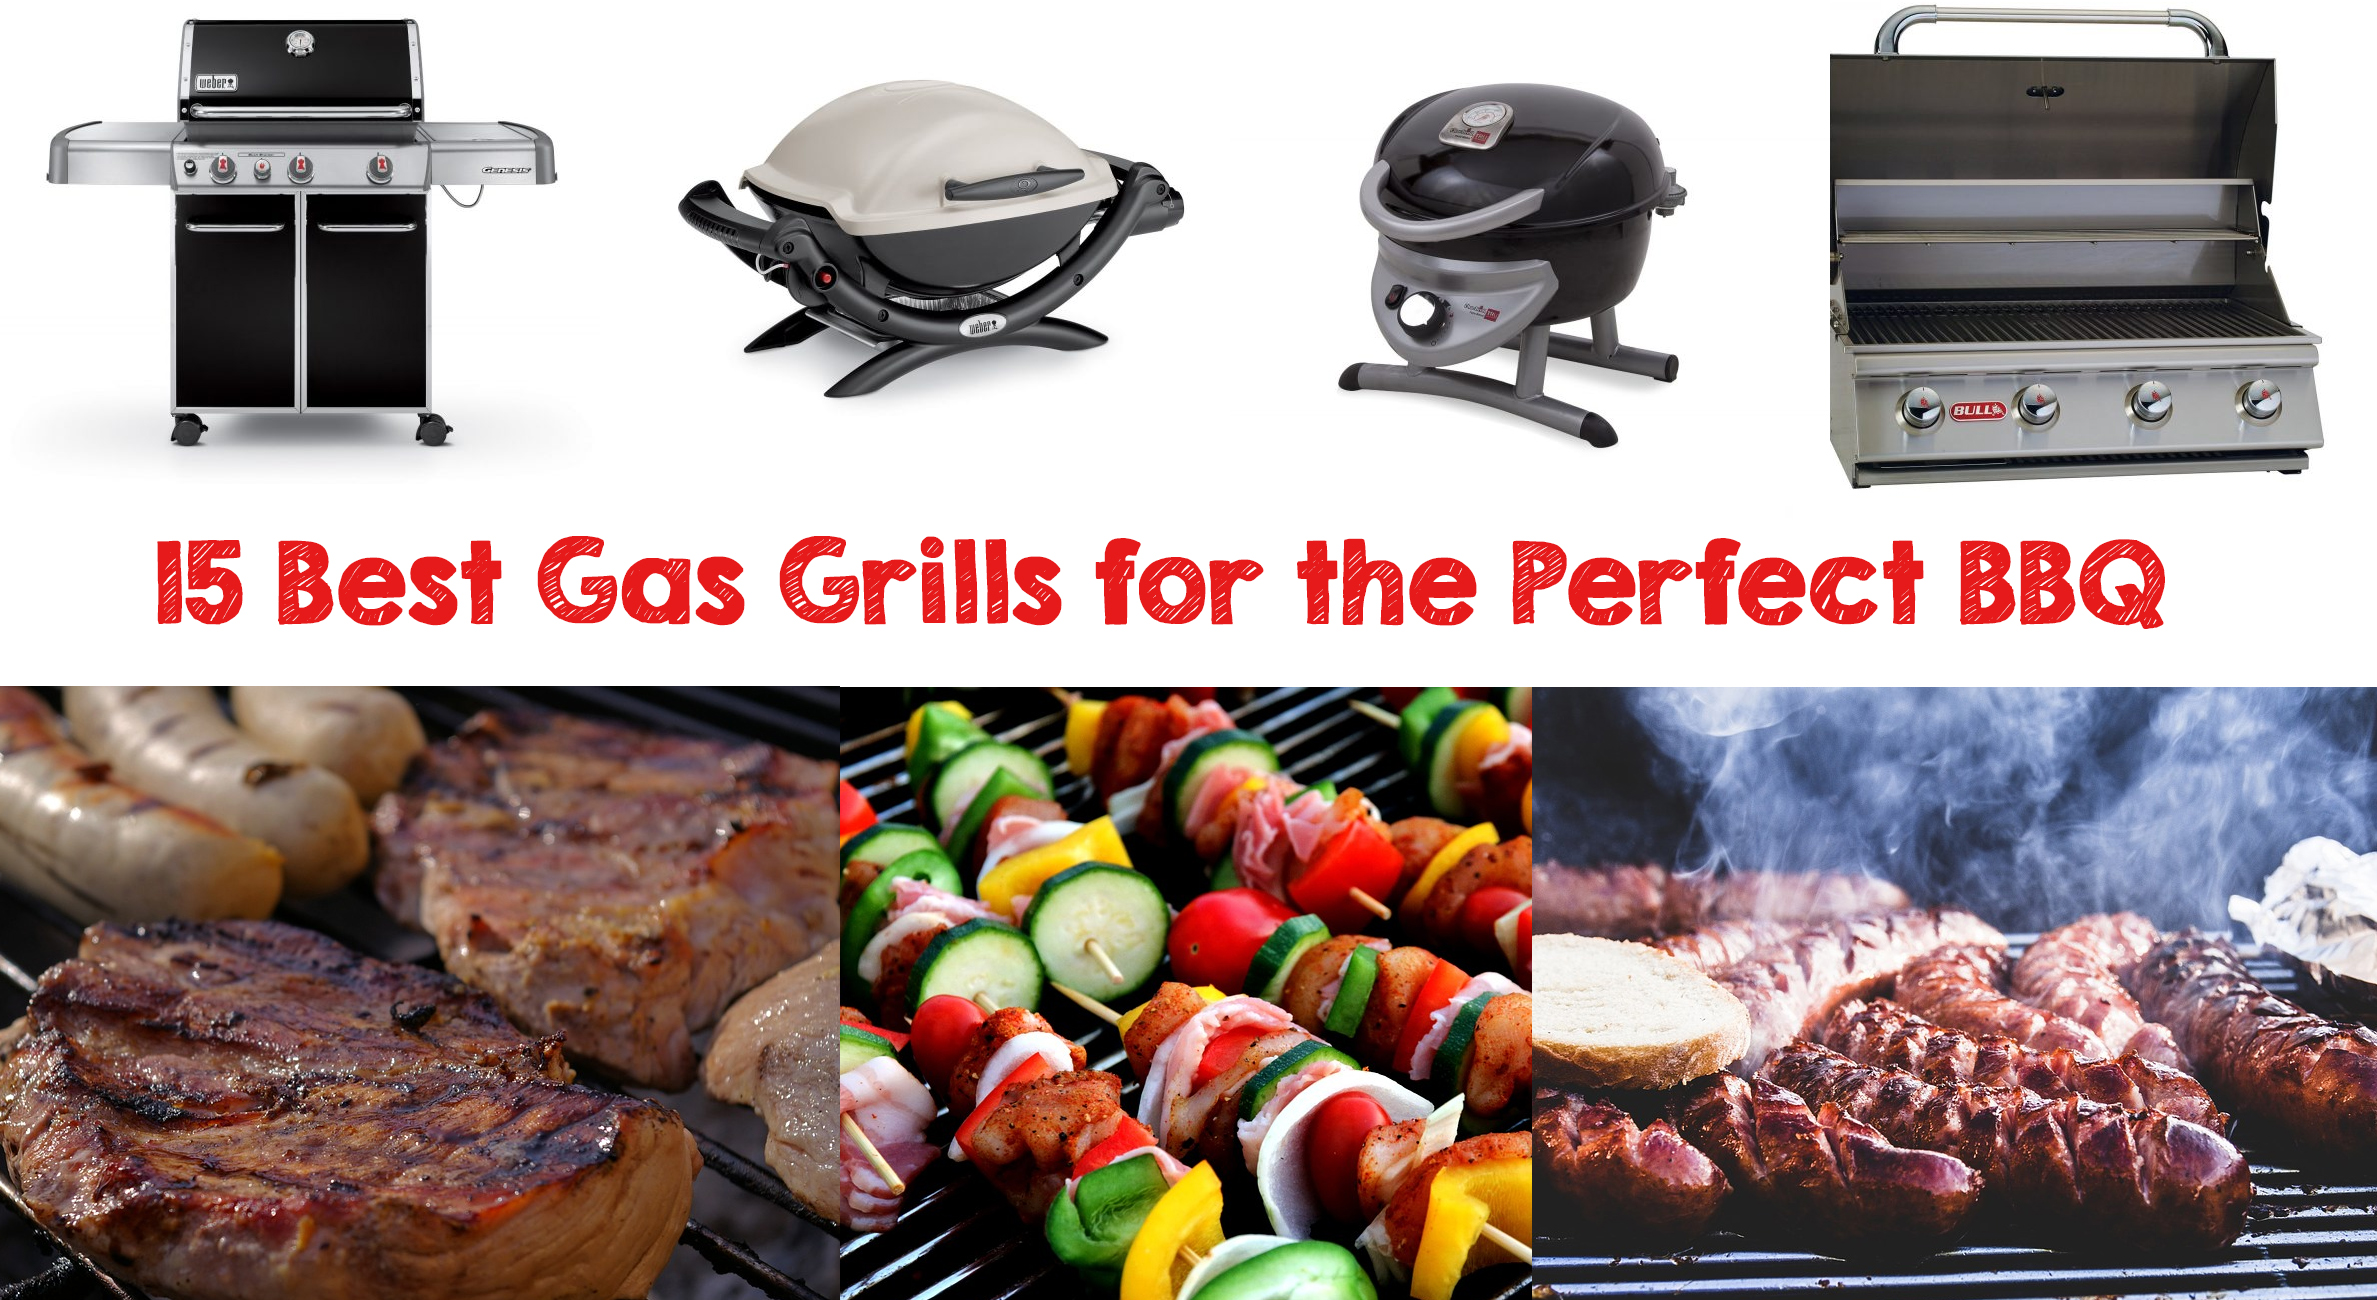 15 Best Gas Grills for the Perfect BBQ